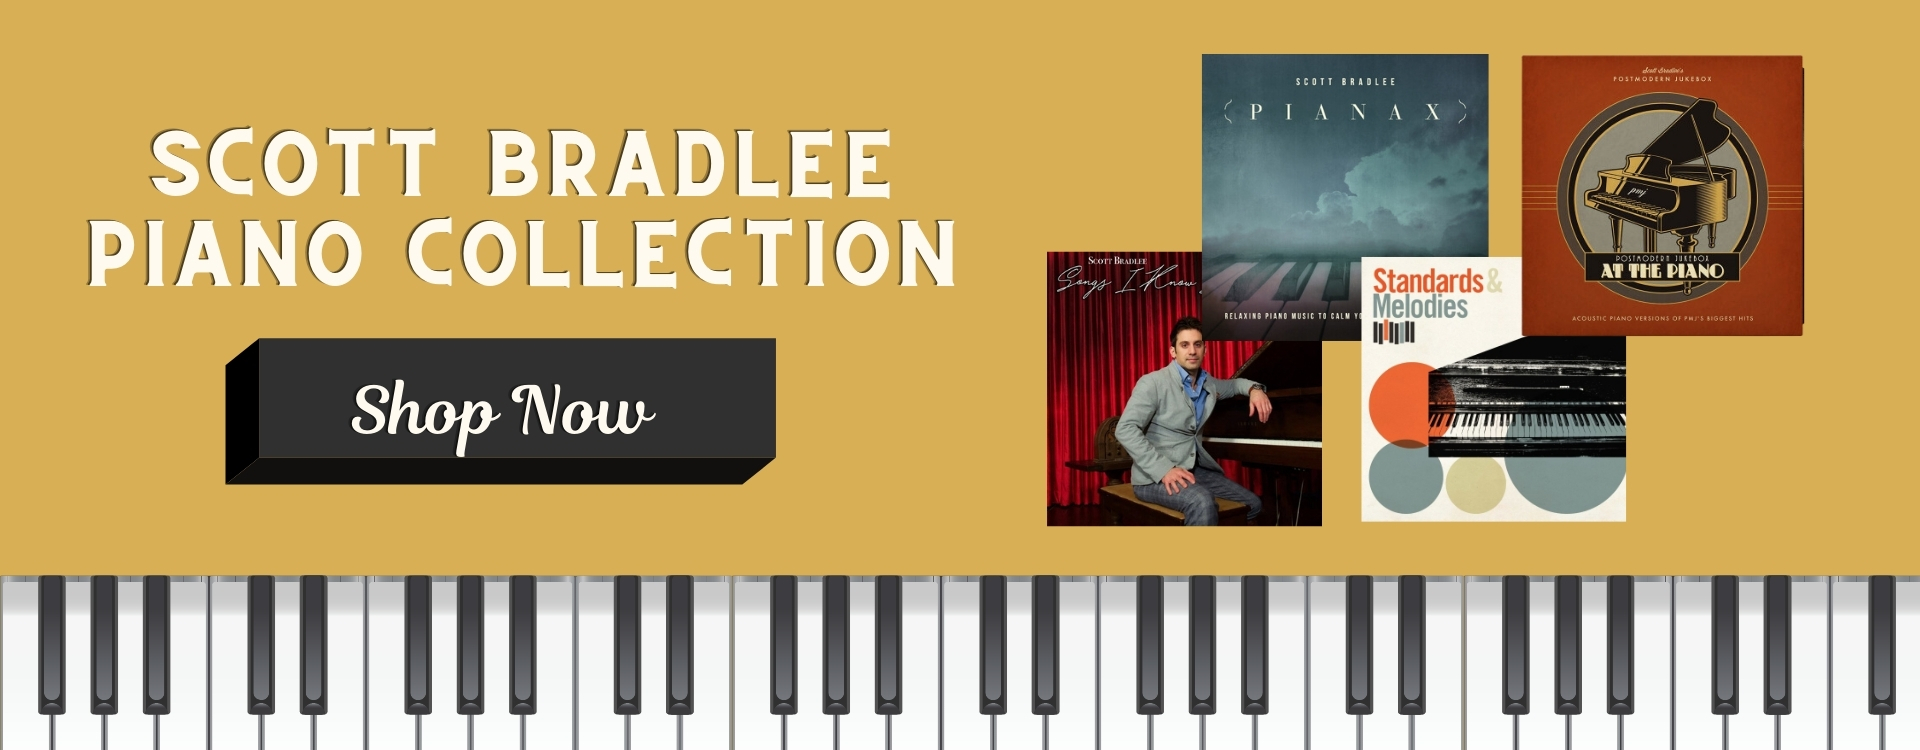 Scott Bradlee Piano Collection